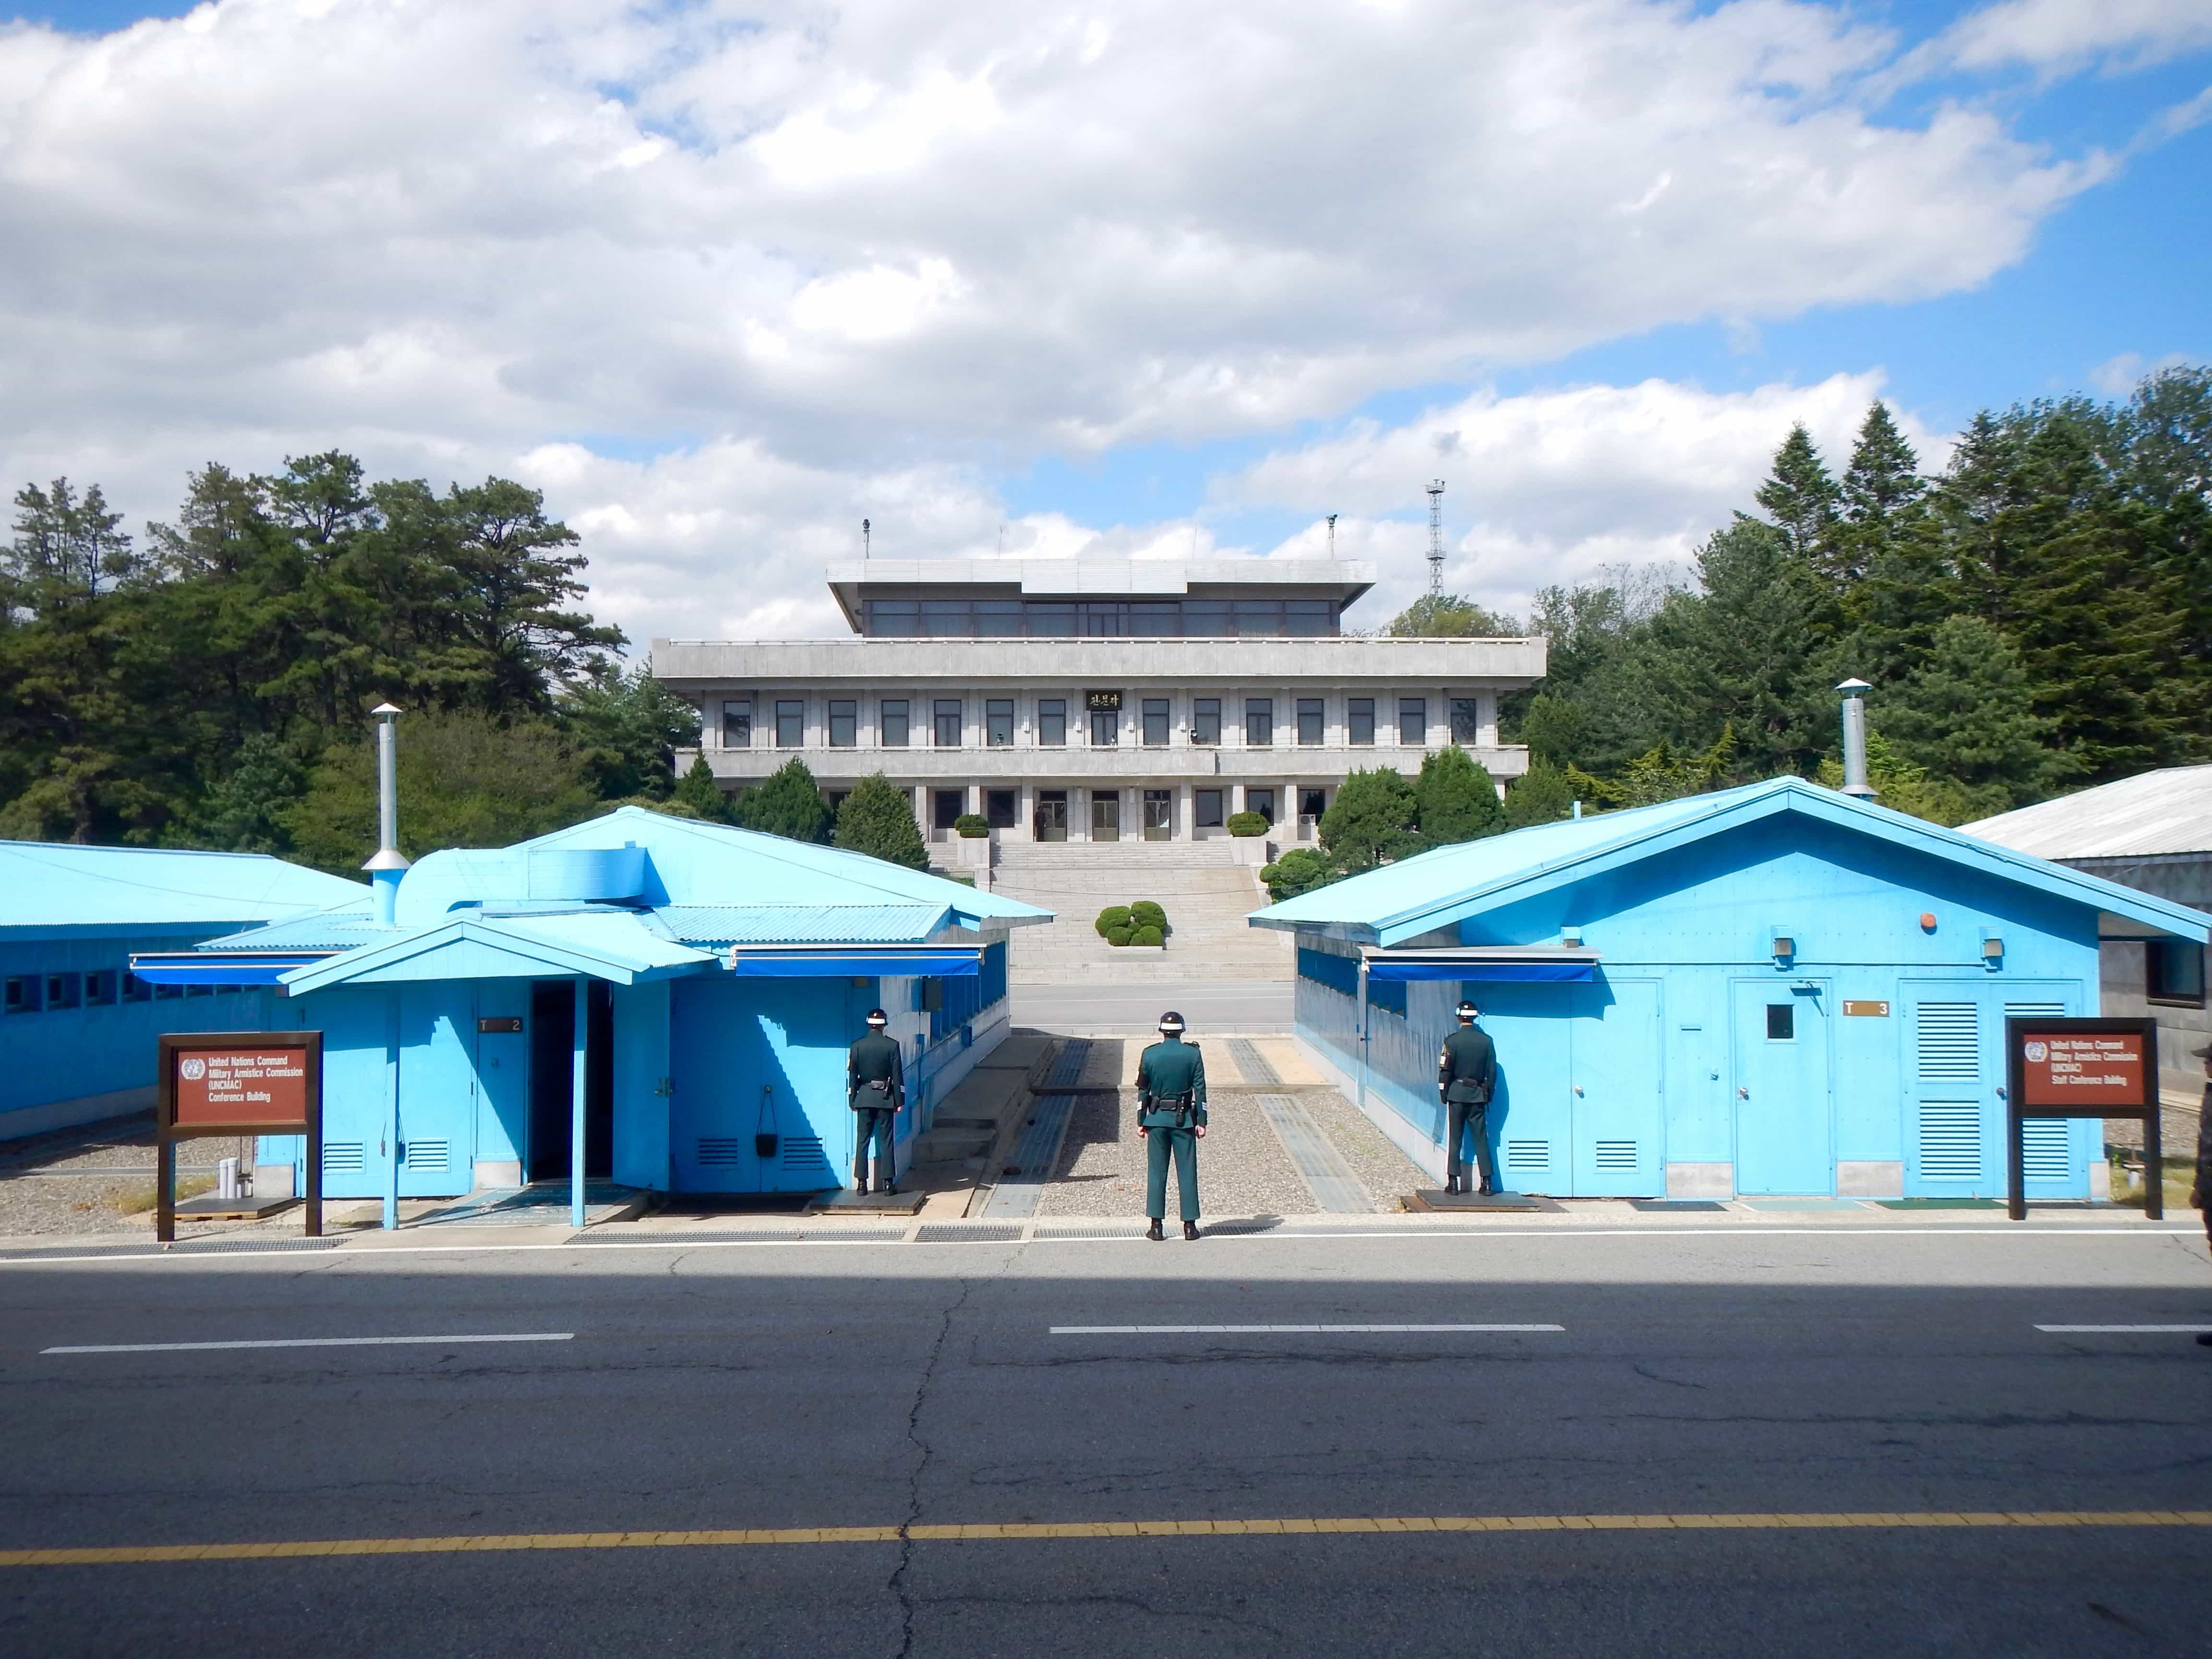 One Korea. One History. One Language. Divided by ideology. When visiting Seoul, be sure to visit the JSA. Would you dare to step foot into North Korea? Read more at www.thefivefoottraveler.com